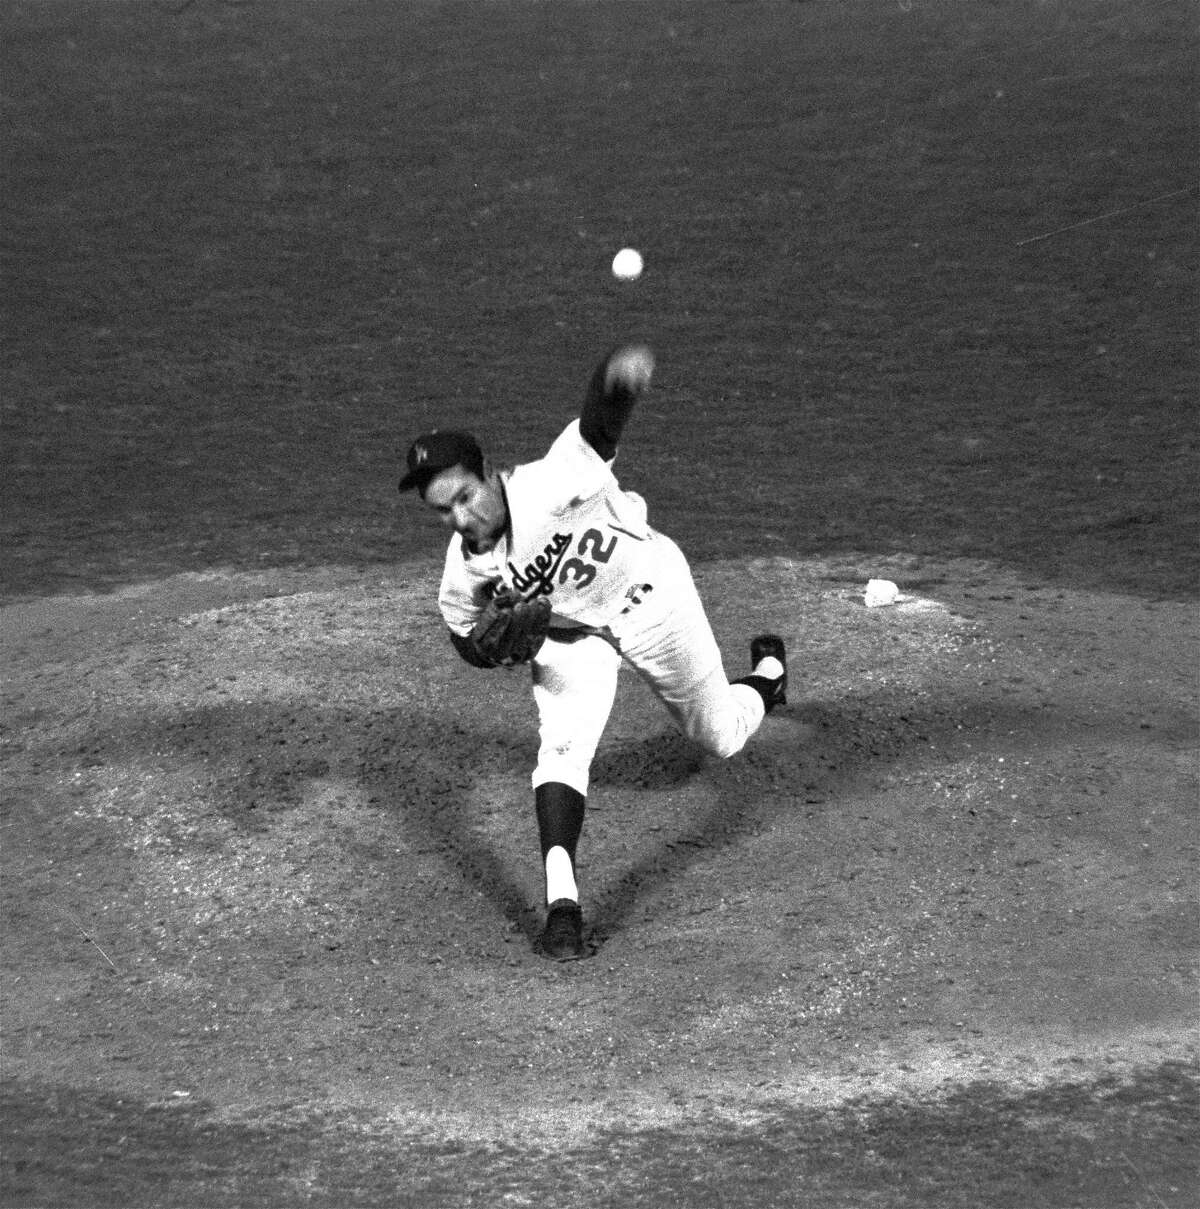 ** ADVANCE FOR WEEKEND EDITIONS, NOV. 9-10 -- FILE -- ** Sandy Koufax throws against the Chicago Cubs enroute to a perfect game, in Los Angeles, in this Sept. 9, 1965 photo. The Dodgers won 1-0. (AP Photo/Harry Matosian) HOUCHRON CAPTION (03/11/2003): Sandy Koufax's dispute with the Dodgers is the subject of a Flak magazine story.